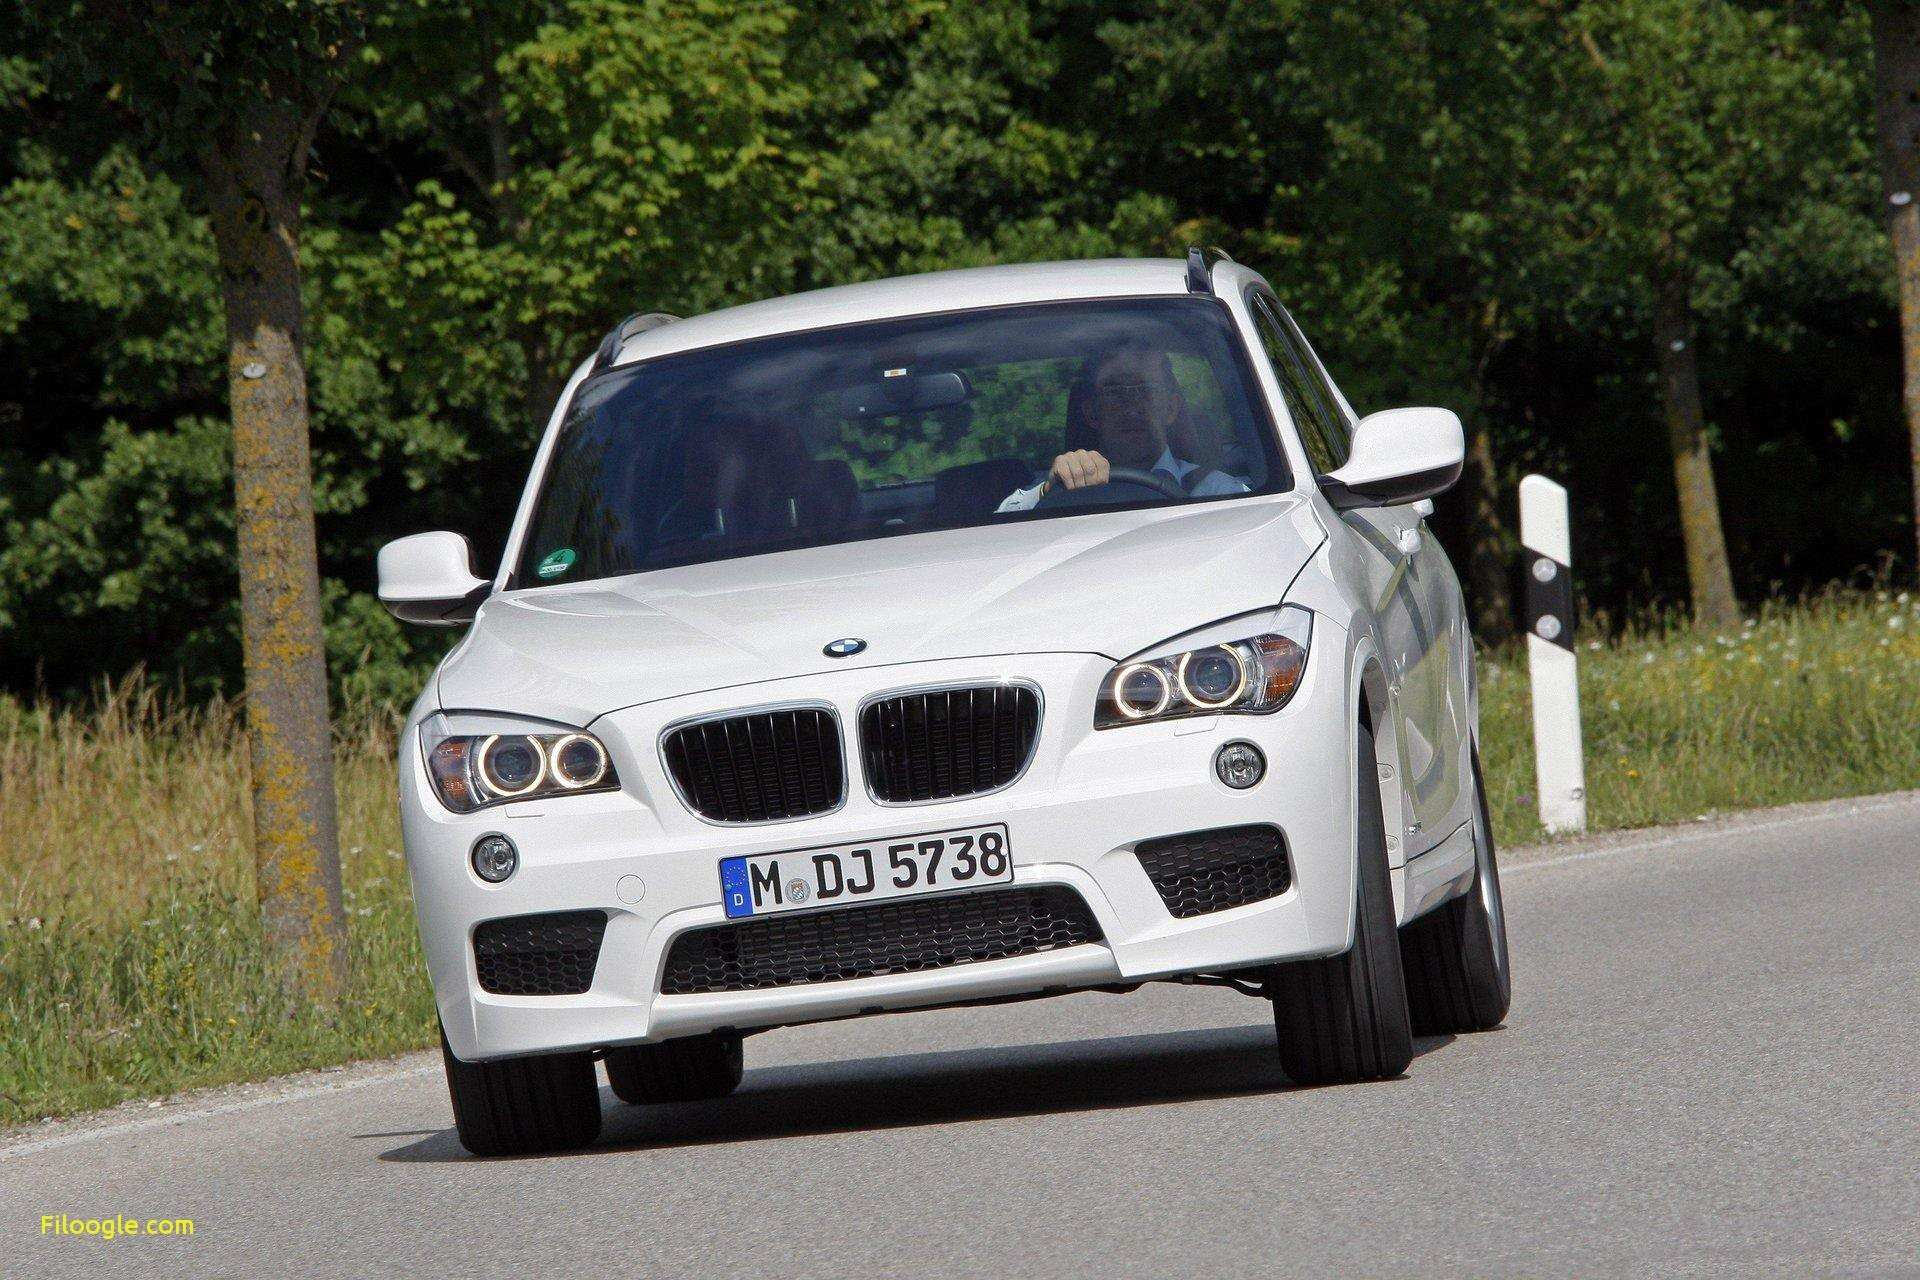 Car Wallpaper 480—800 Lovely Bmw X1 Sdrive 2 0d Car Hd Wallpaper for